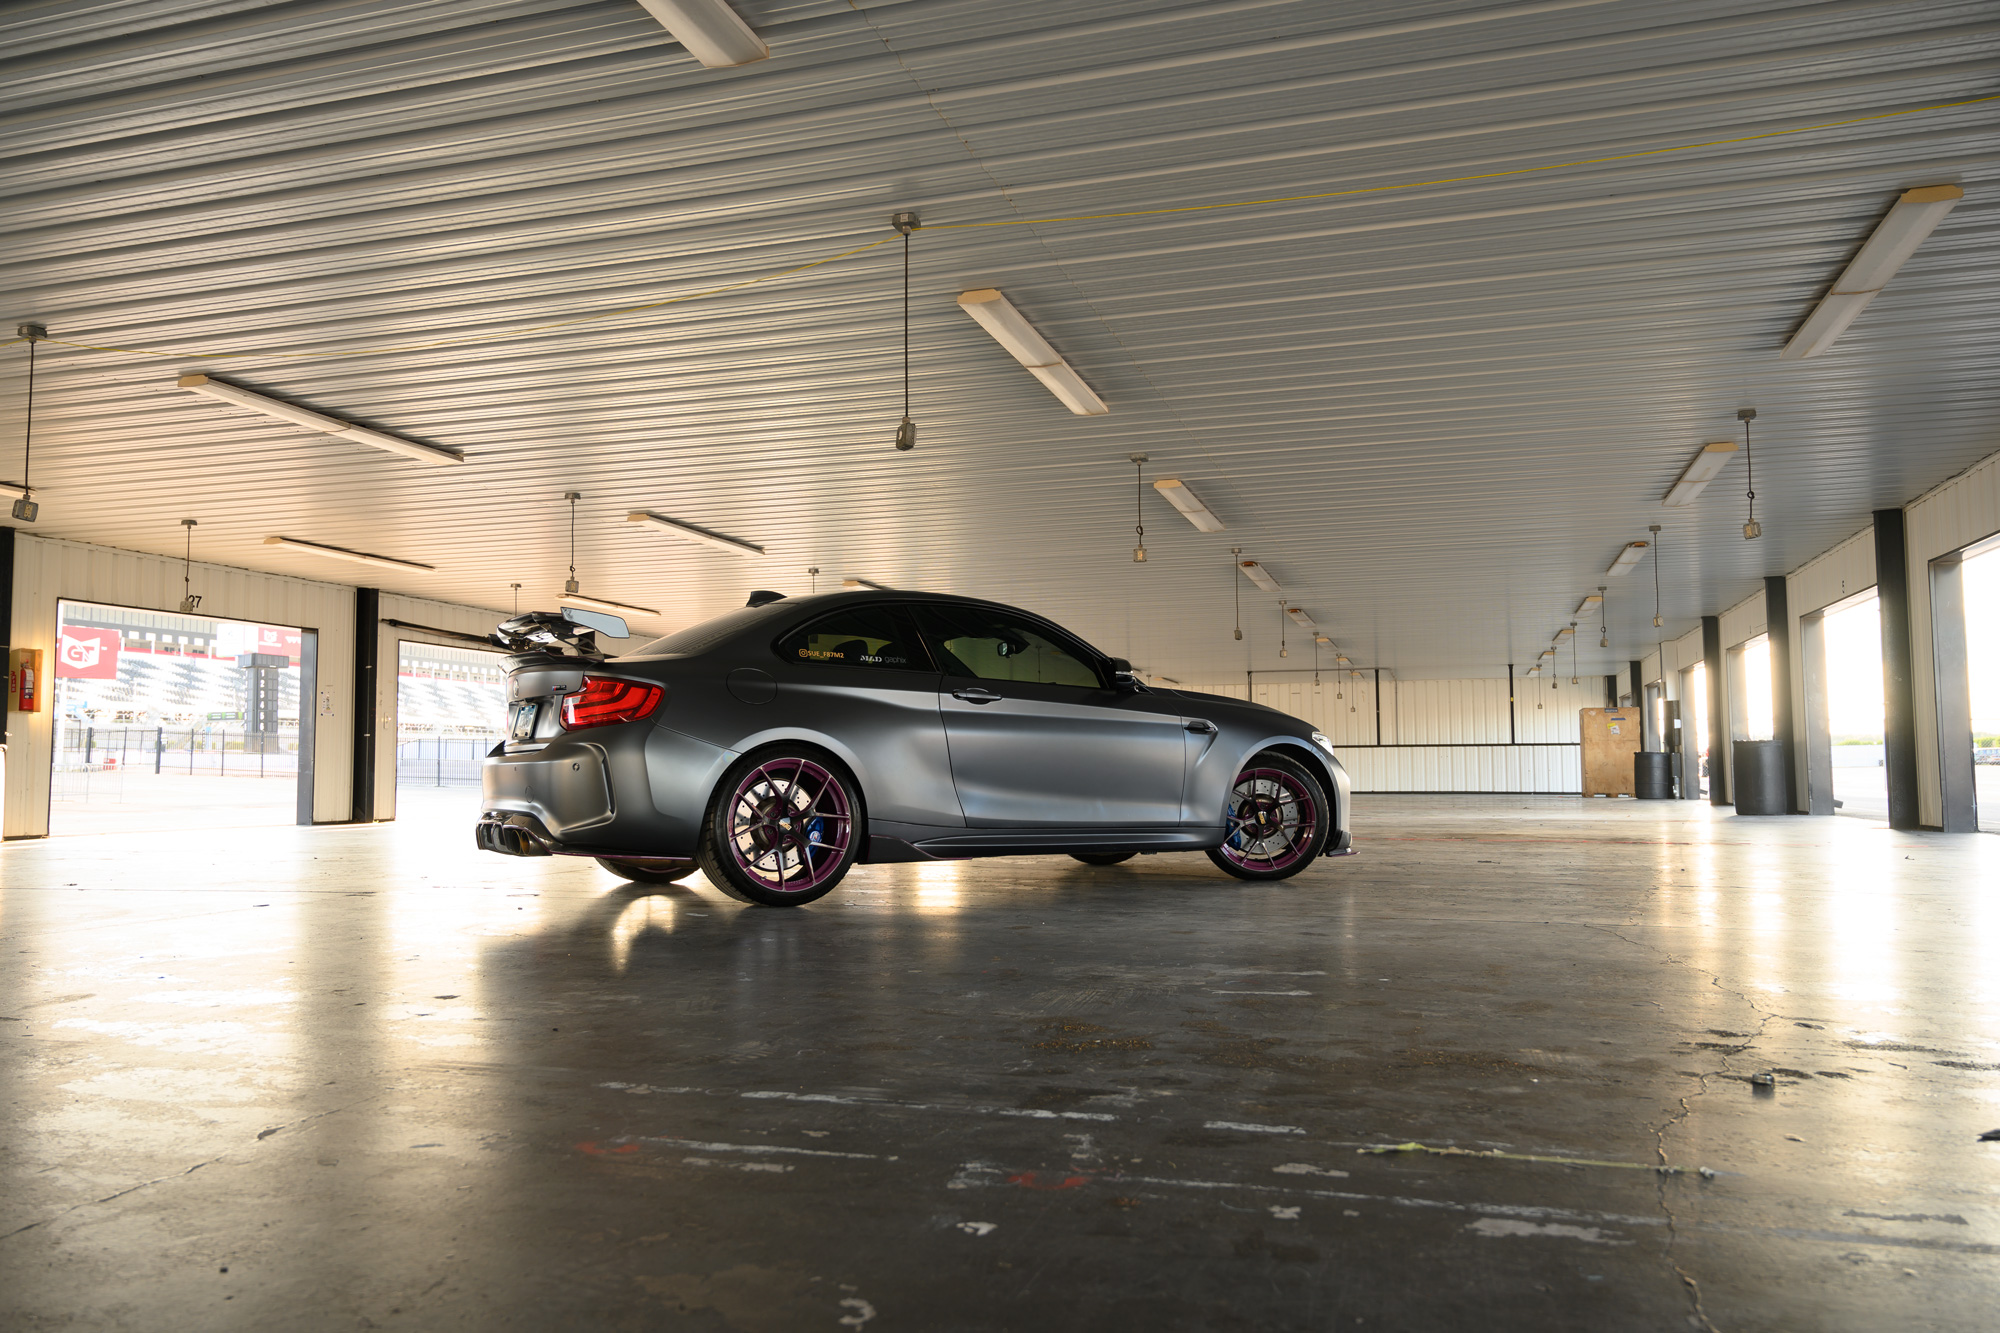 BMW M2 at pocono garage